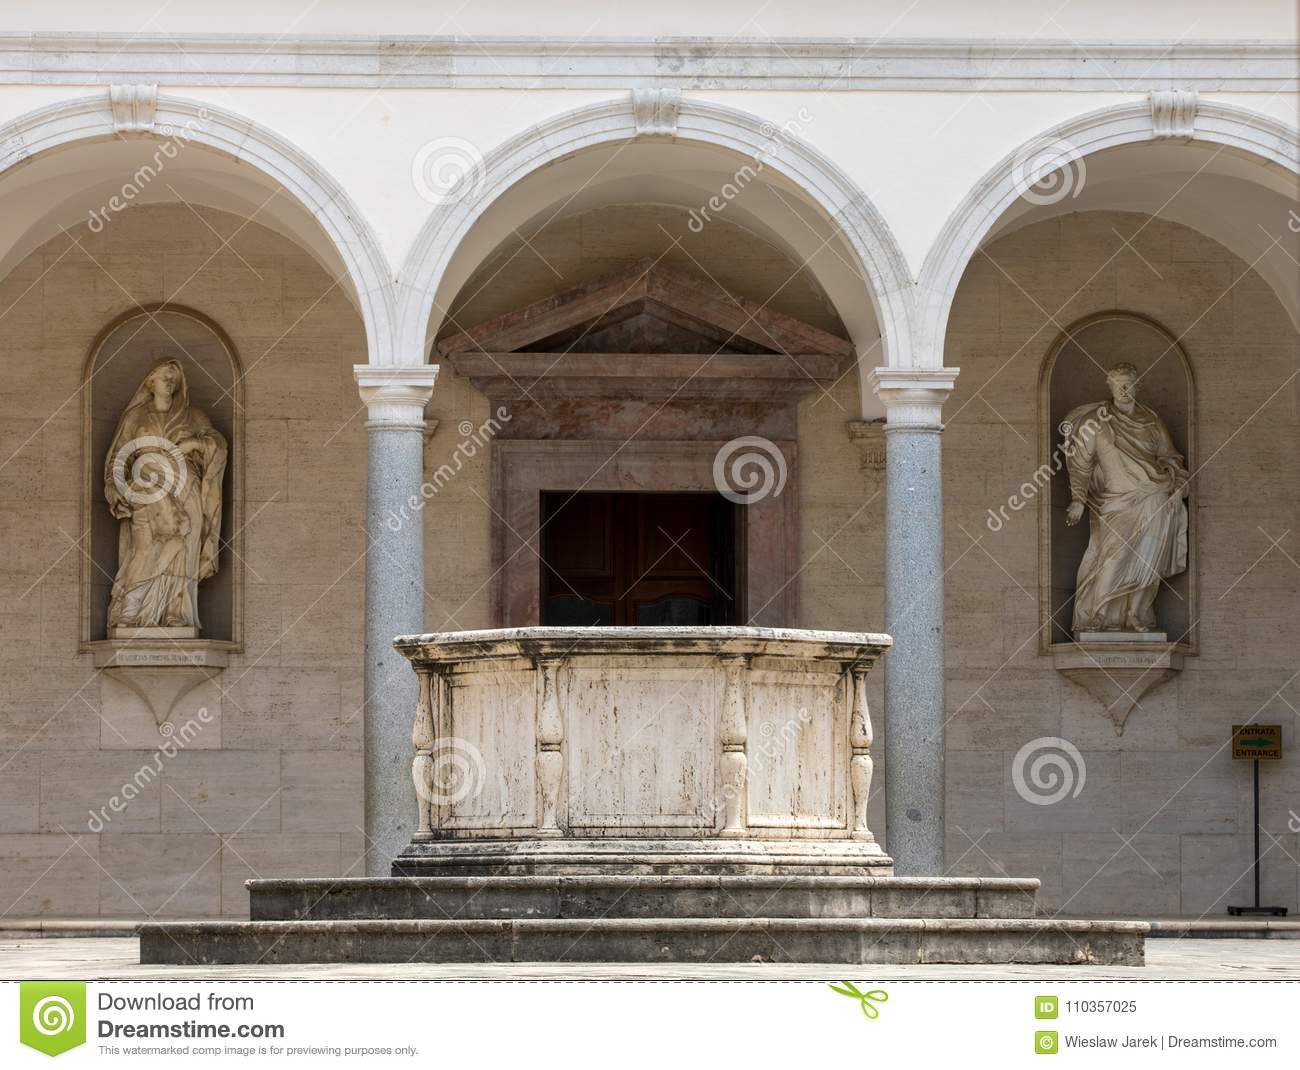 Cloister of Benedictine abbey of Monte Cassino. Italy